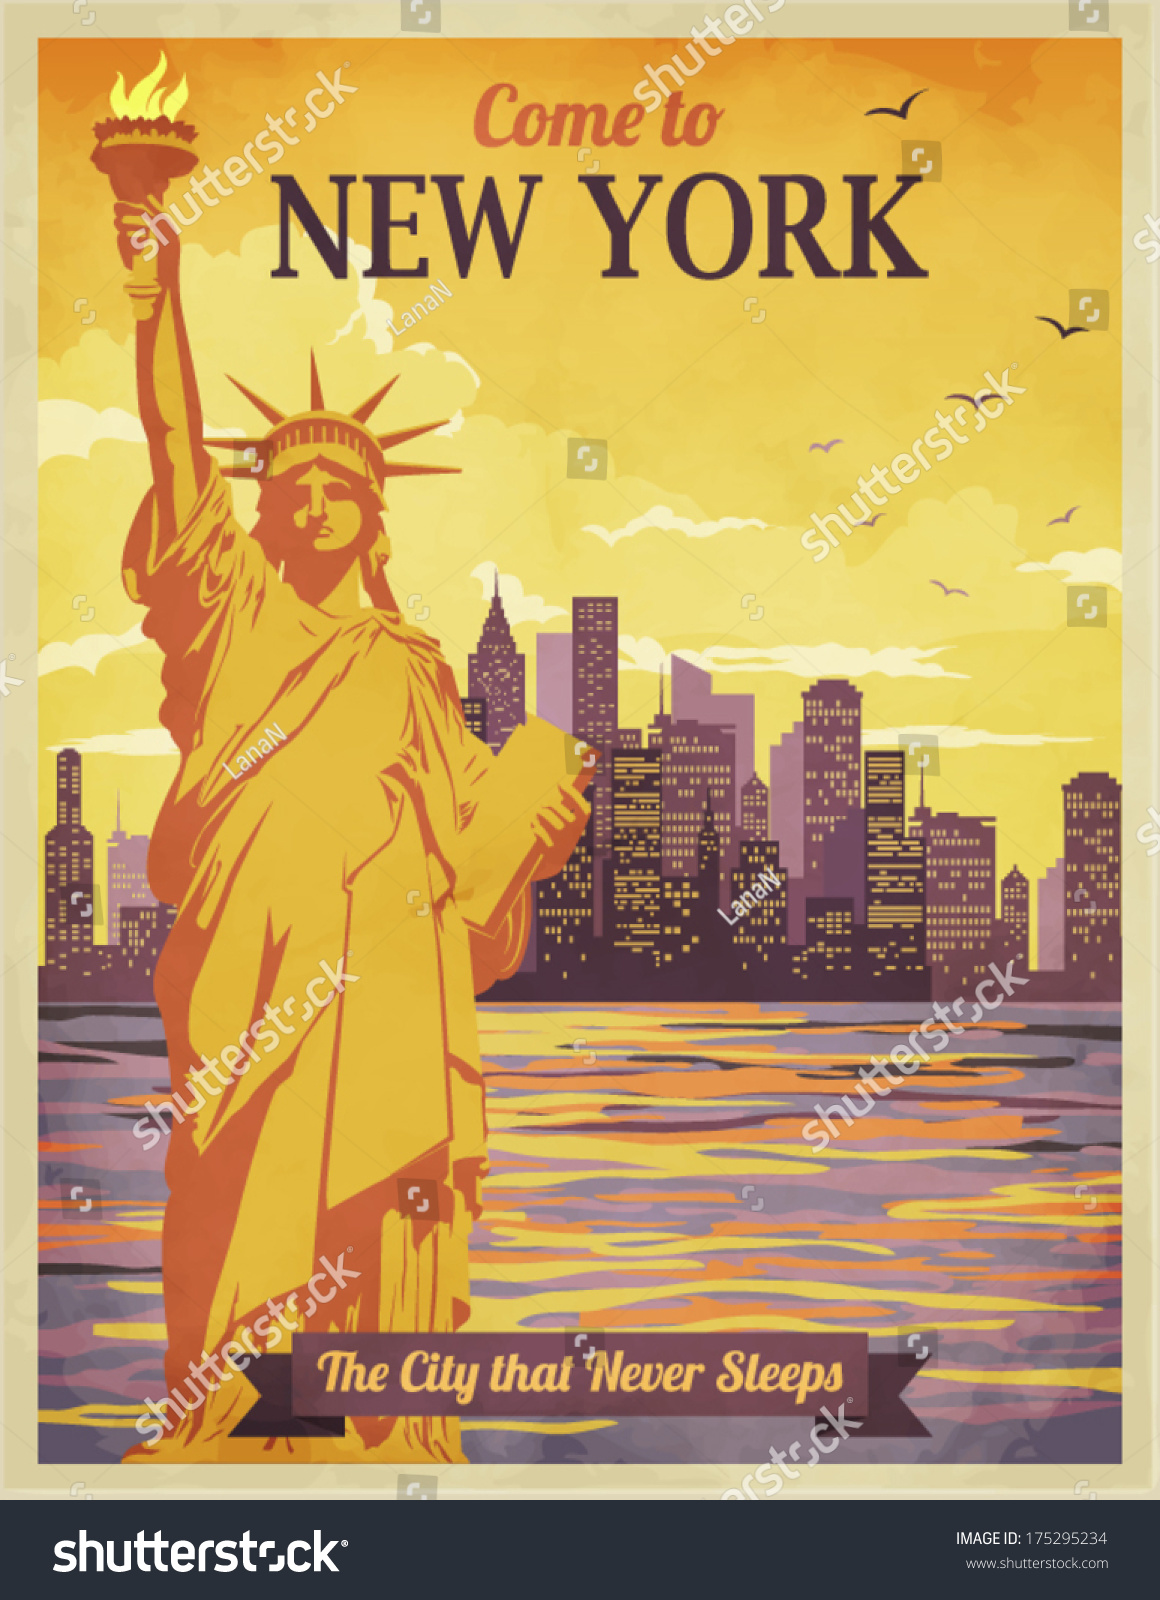 travel new york poster vintagestyle advertisement stock vector 175295234 shutterstock. Black Bedroom Furniture Sets. Home Design Ideas